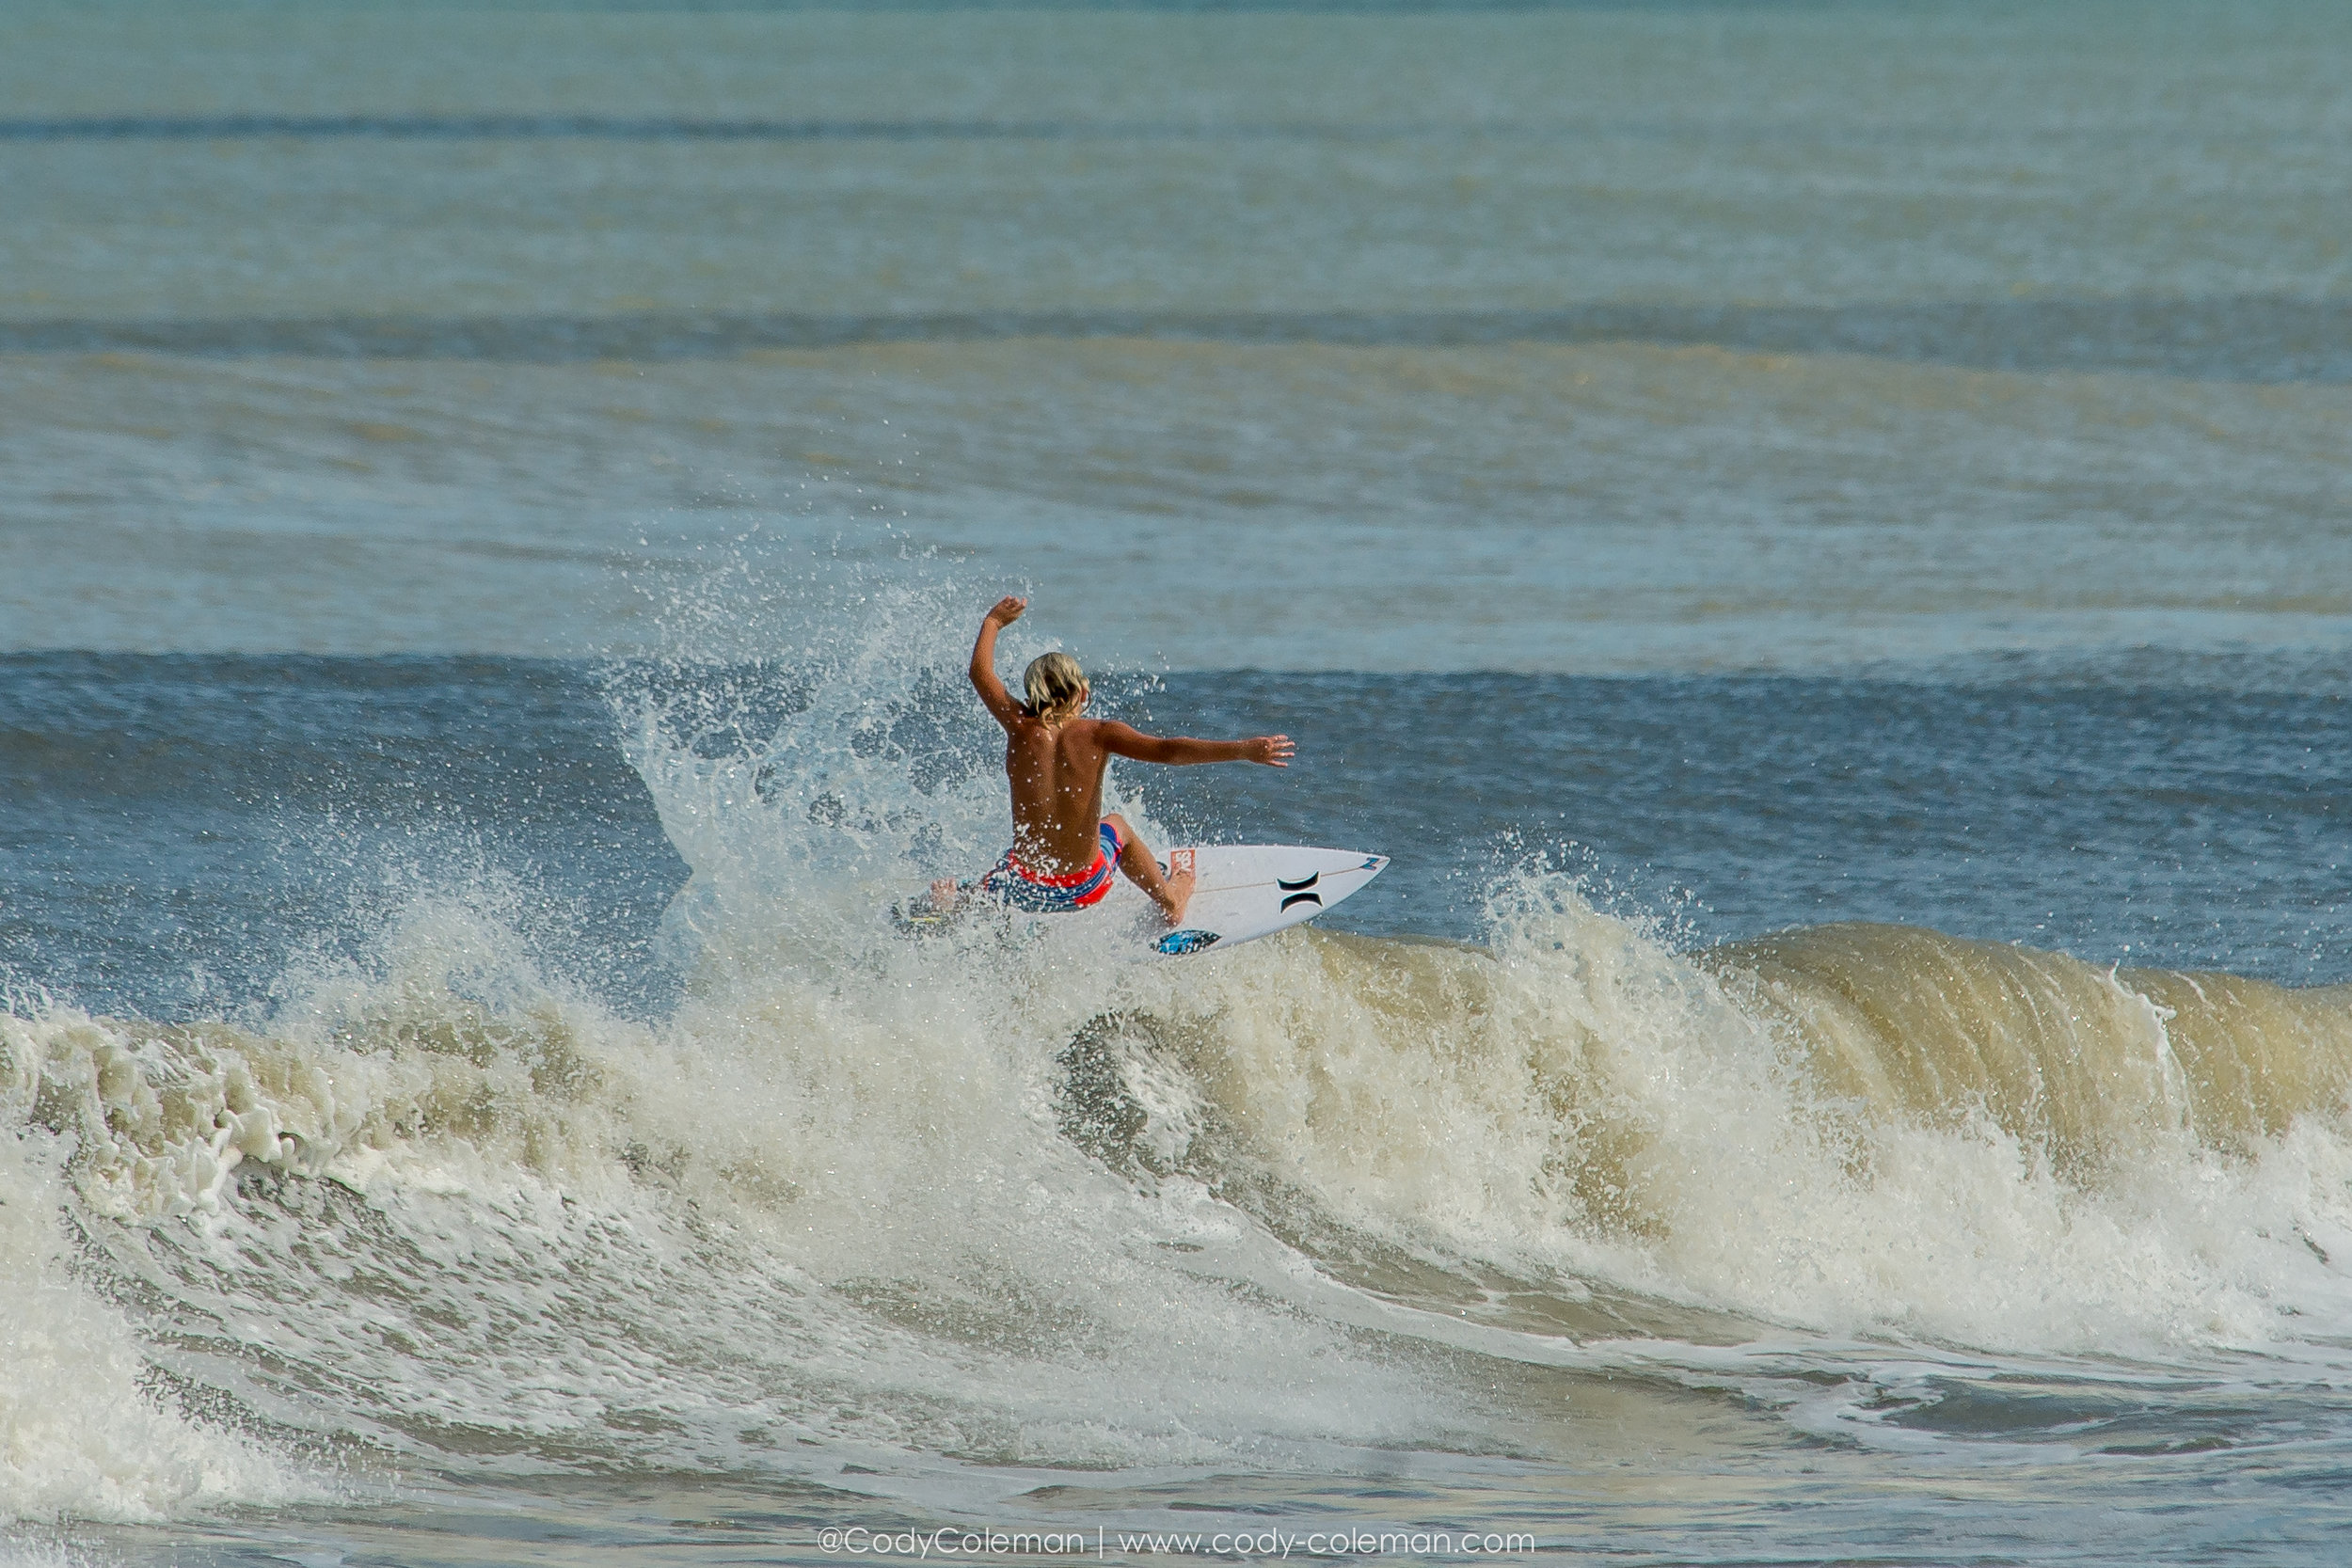 Benji Lang was out all afternoon Wednesday packing tubes and finding section to hit. Super rad watching him put his head down and pack a couple heavy ones... Yeahhhh Benji !!!